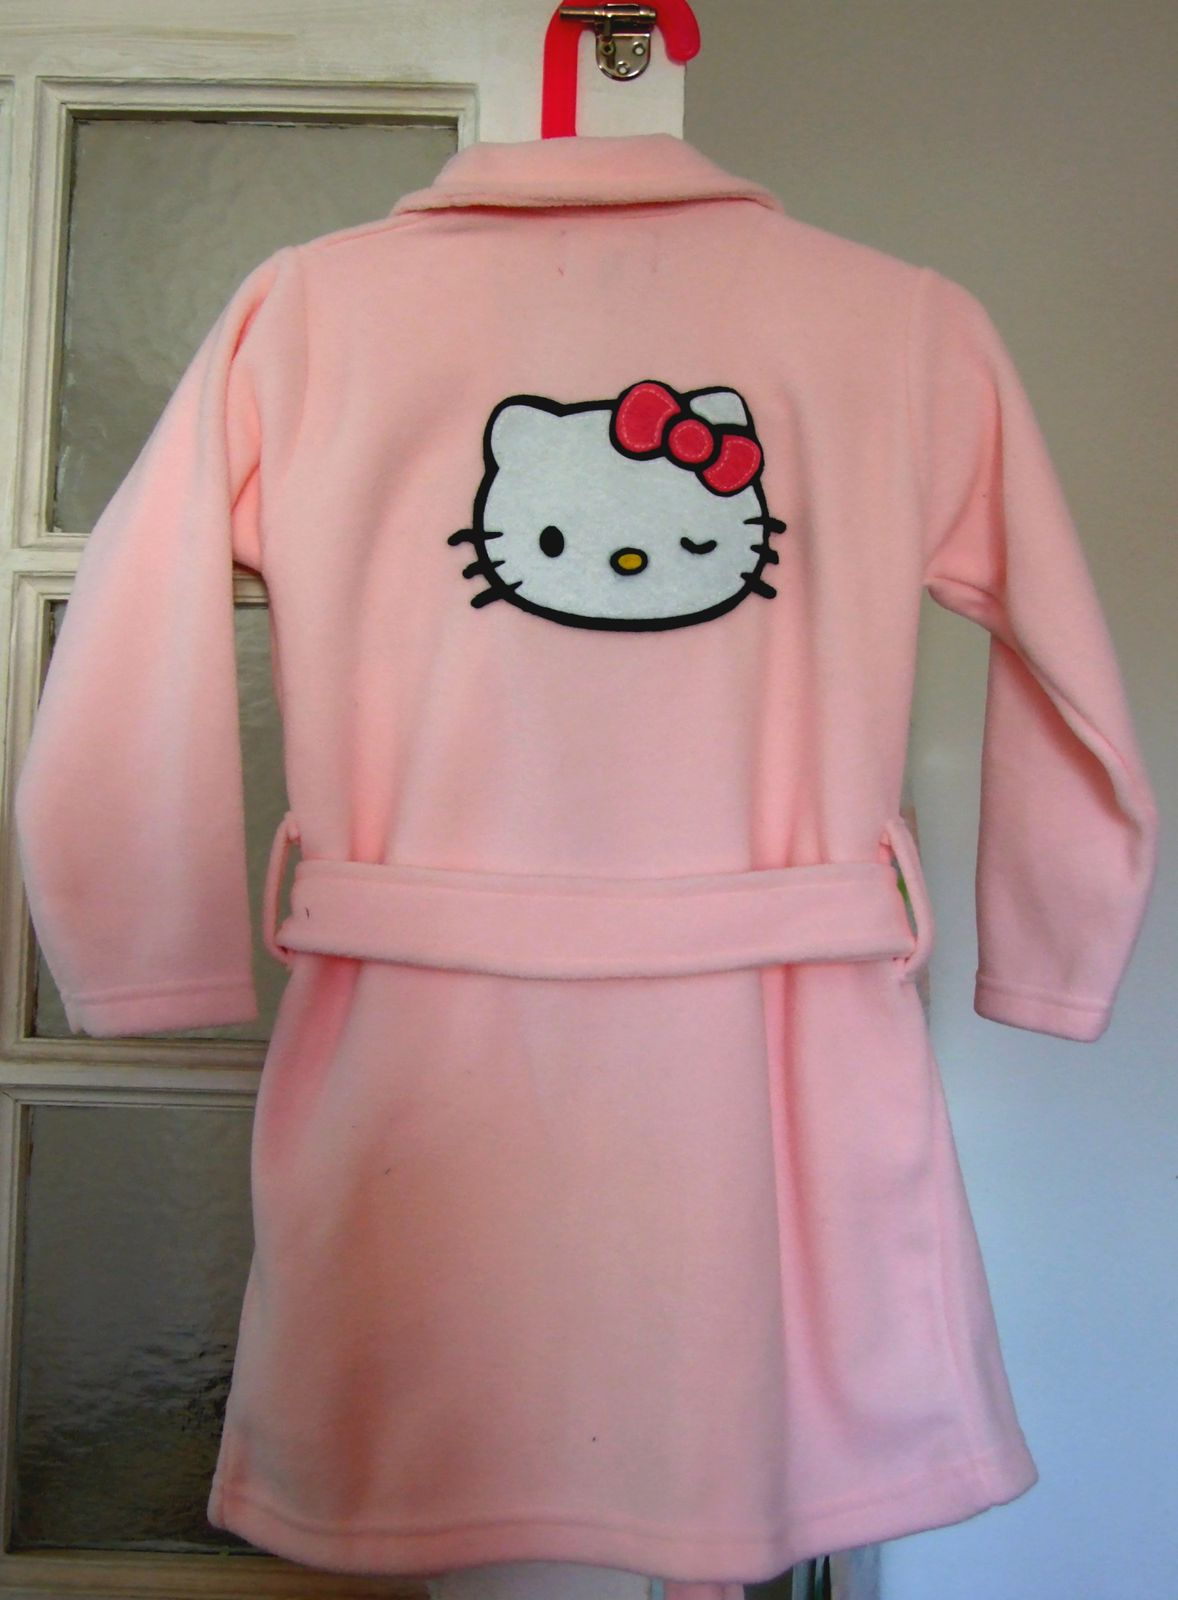 Robe de chambre hello kitty ma m 39 zelle panpan - Robe de chambre hello kitty ...